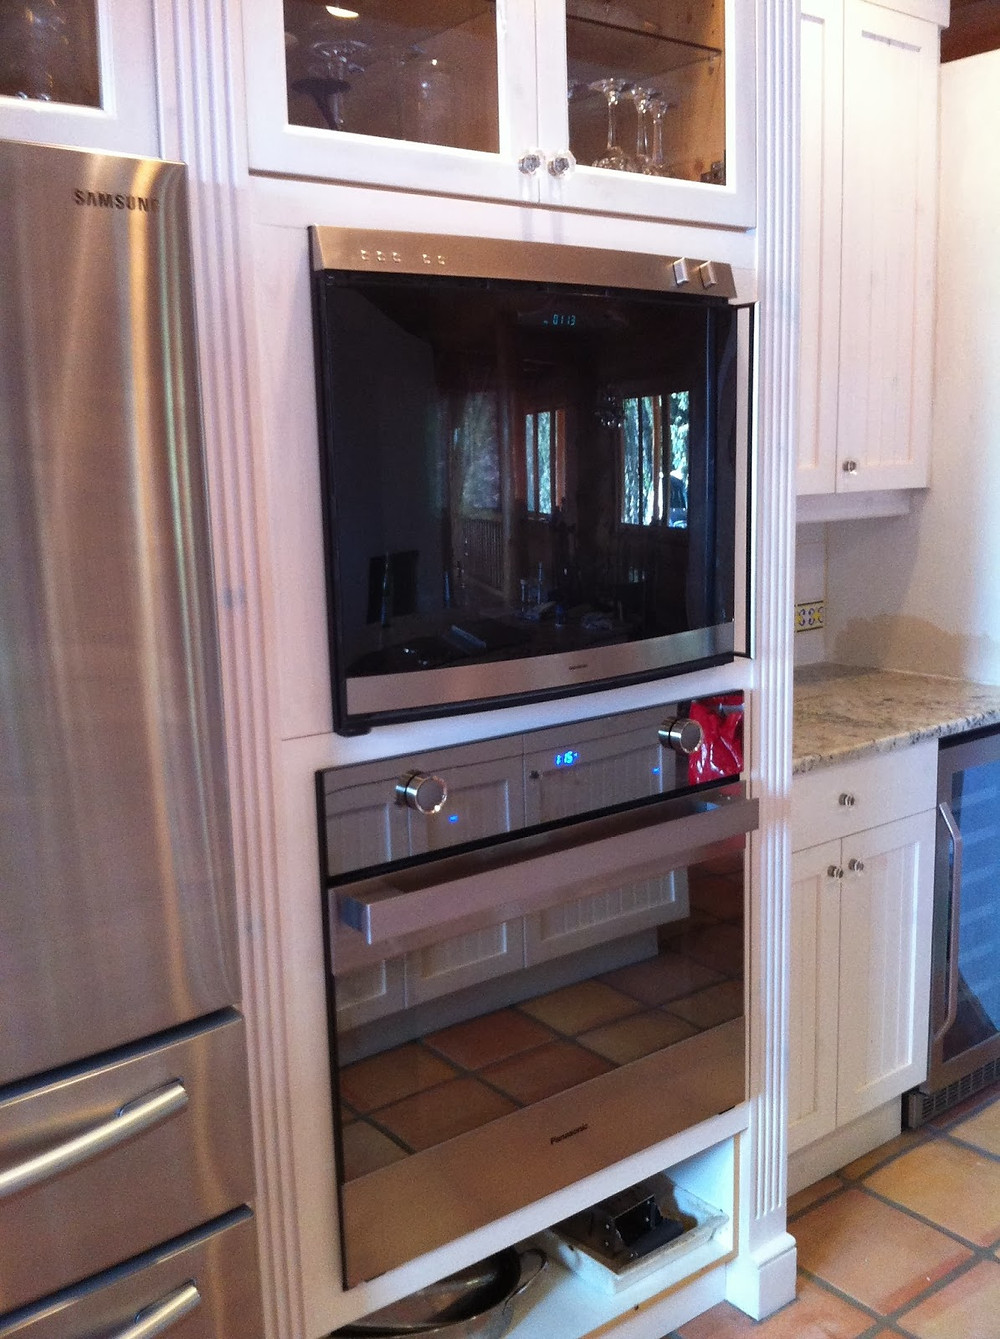 Gaggenau Convection Oven